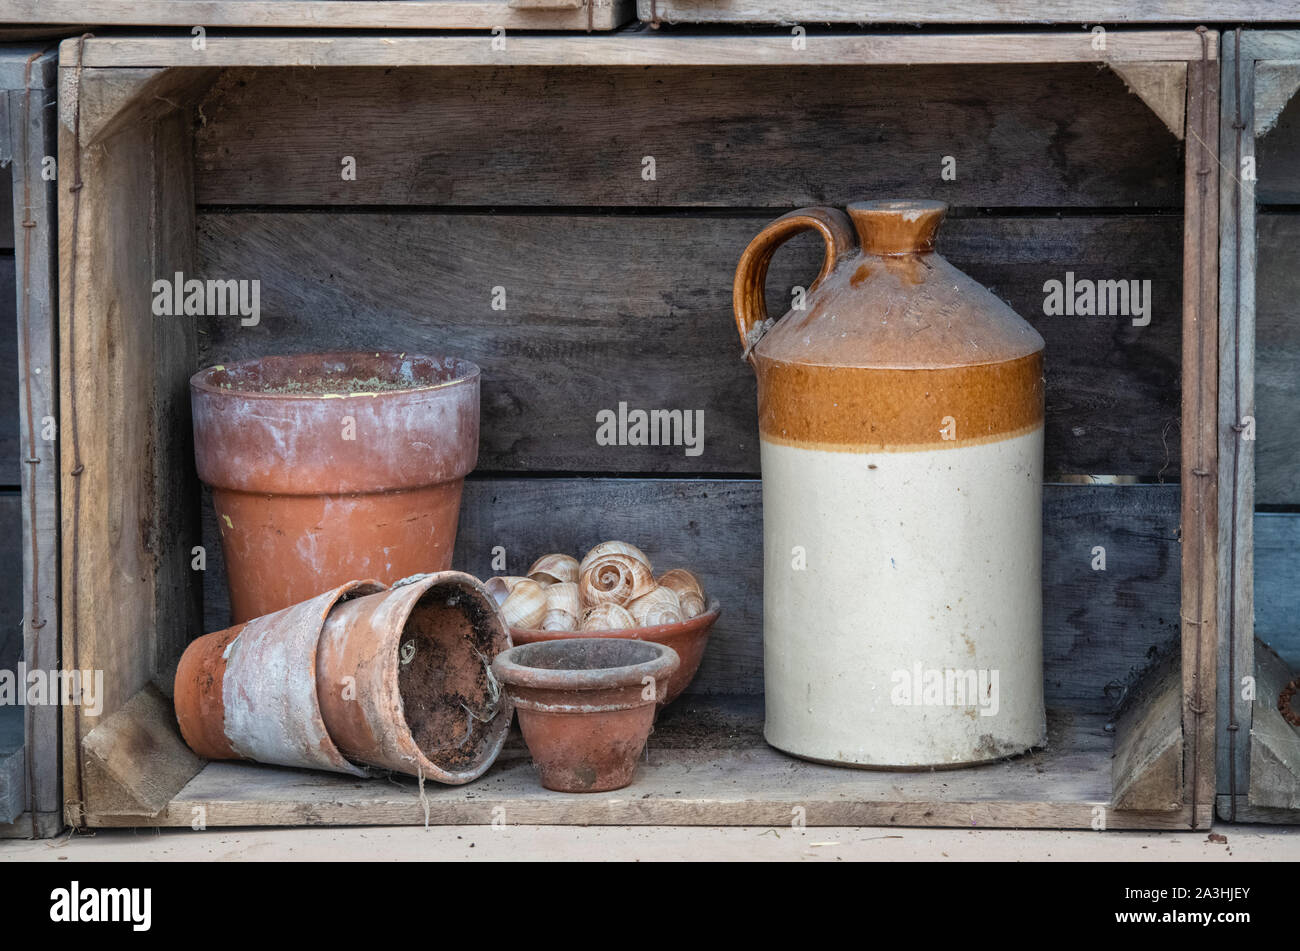 Stoneware jar and terracotta plant pots in a wooden crate shelf display at the RHS Malvern Autumn Show, Worcestershire, UK Stock Photo